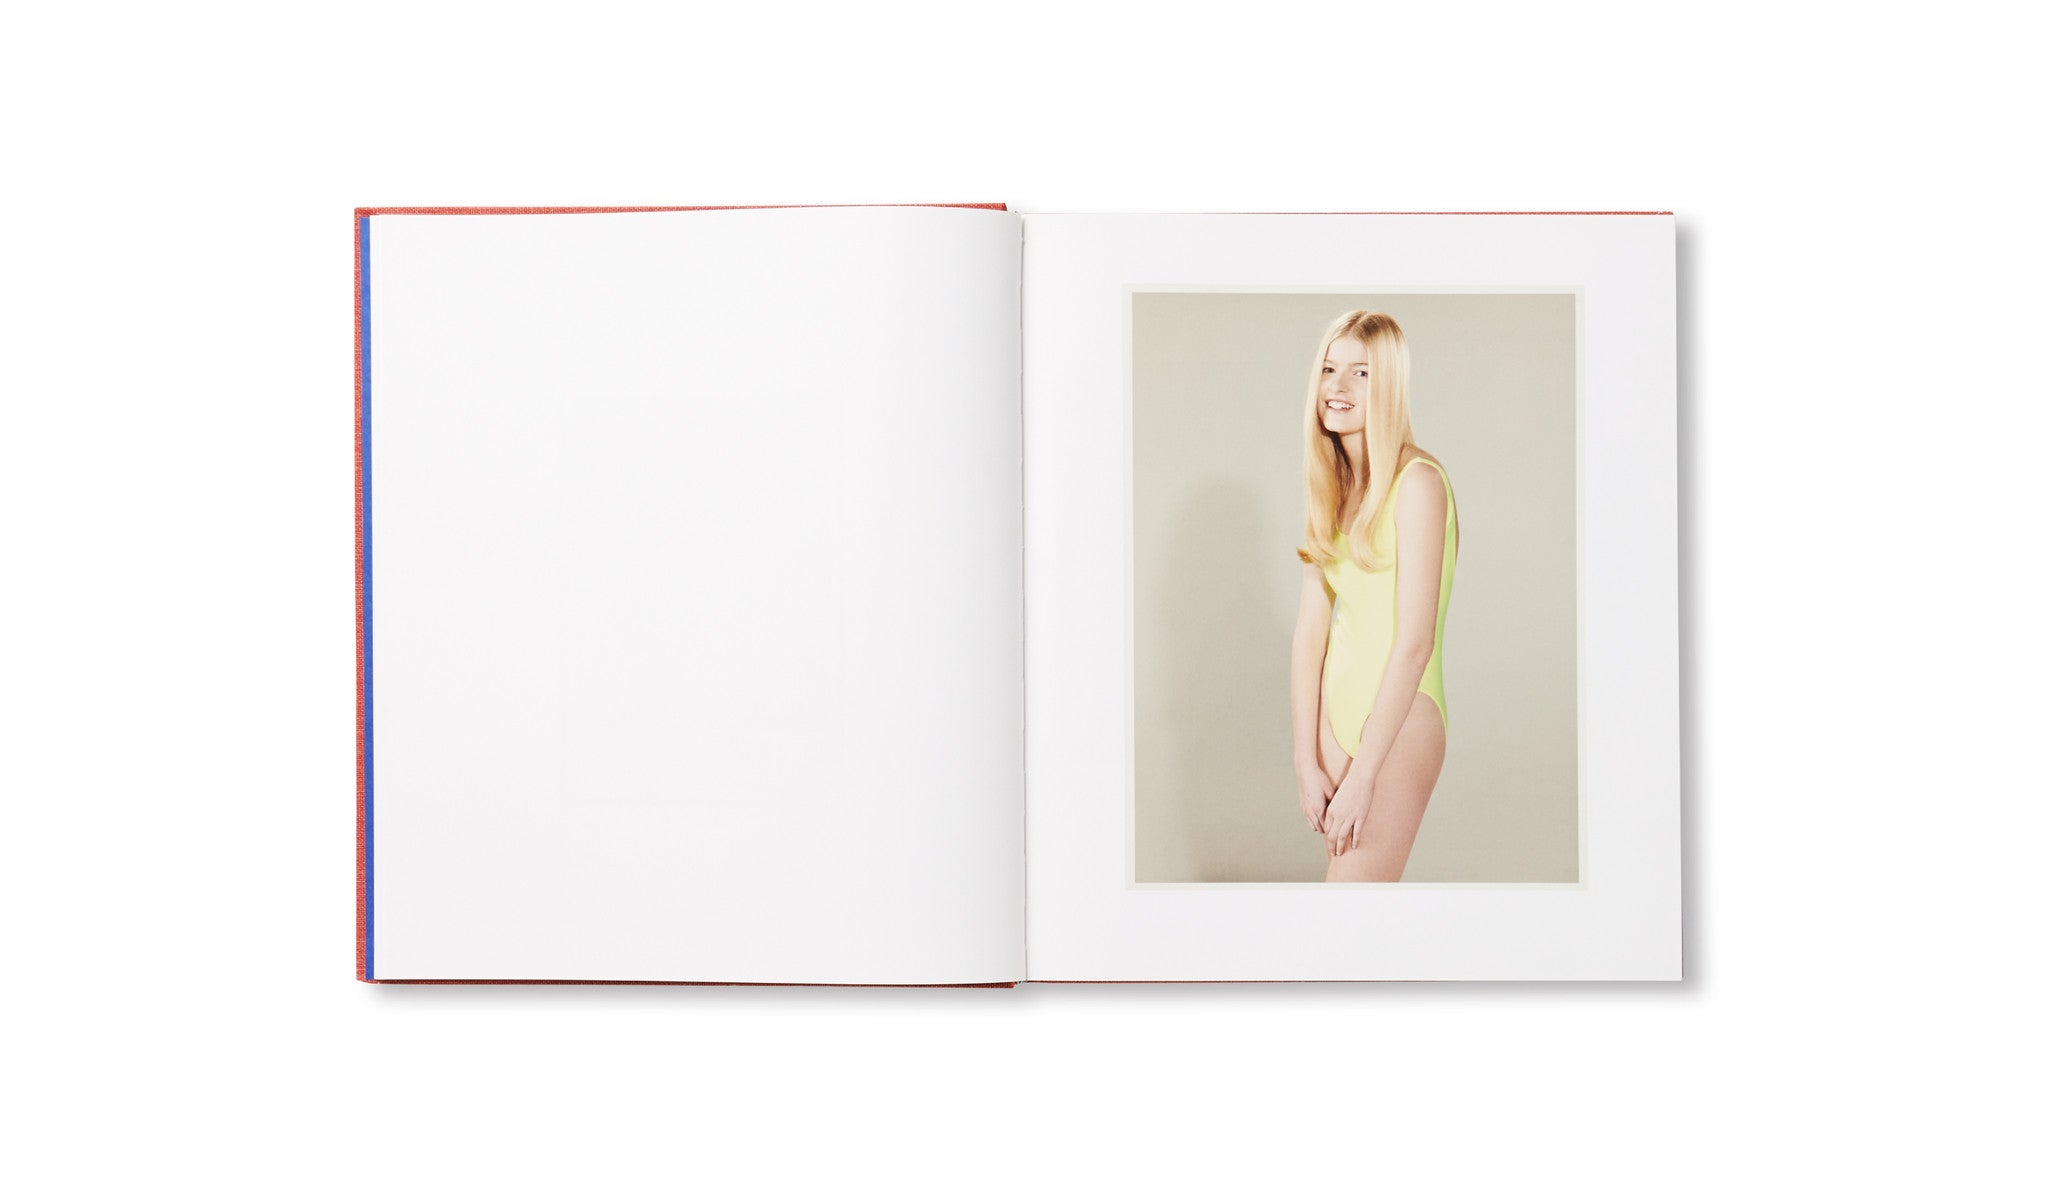 LE LUXE by Roe Ethridge [SECOND EDITION]